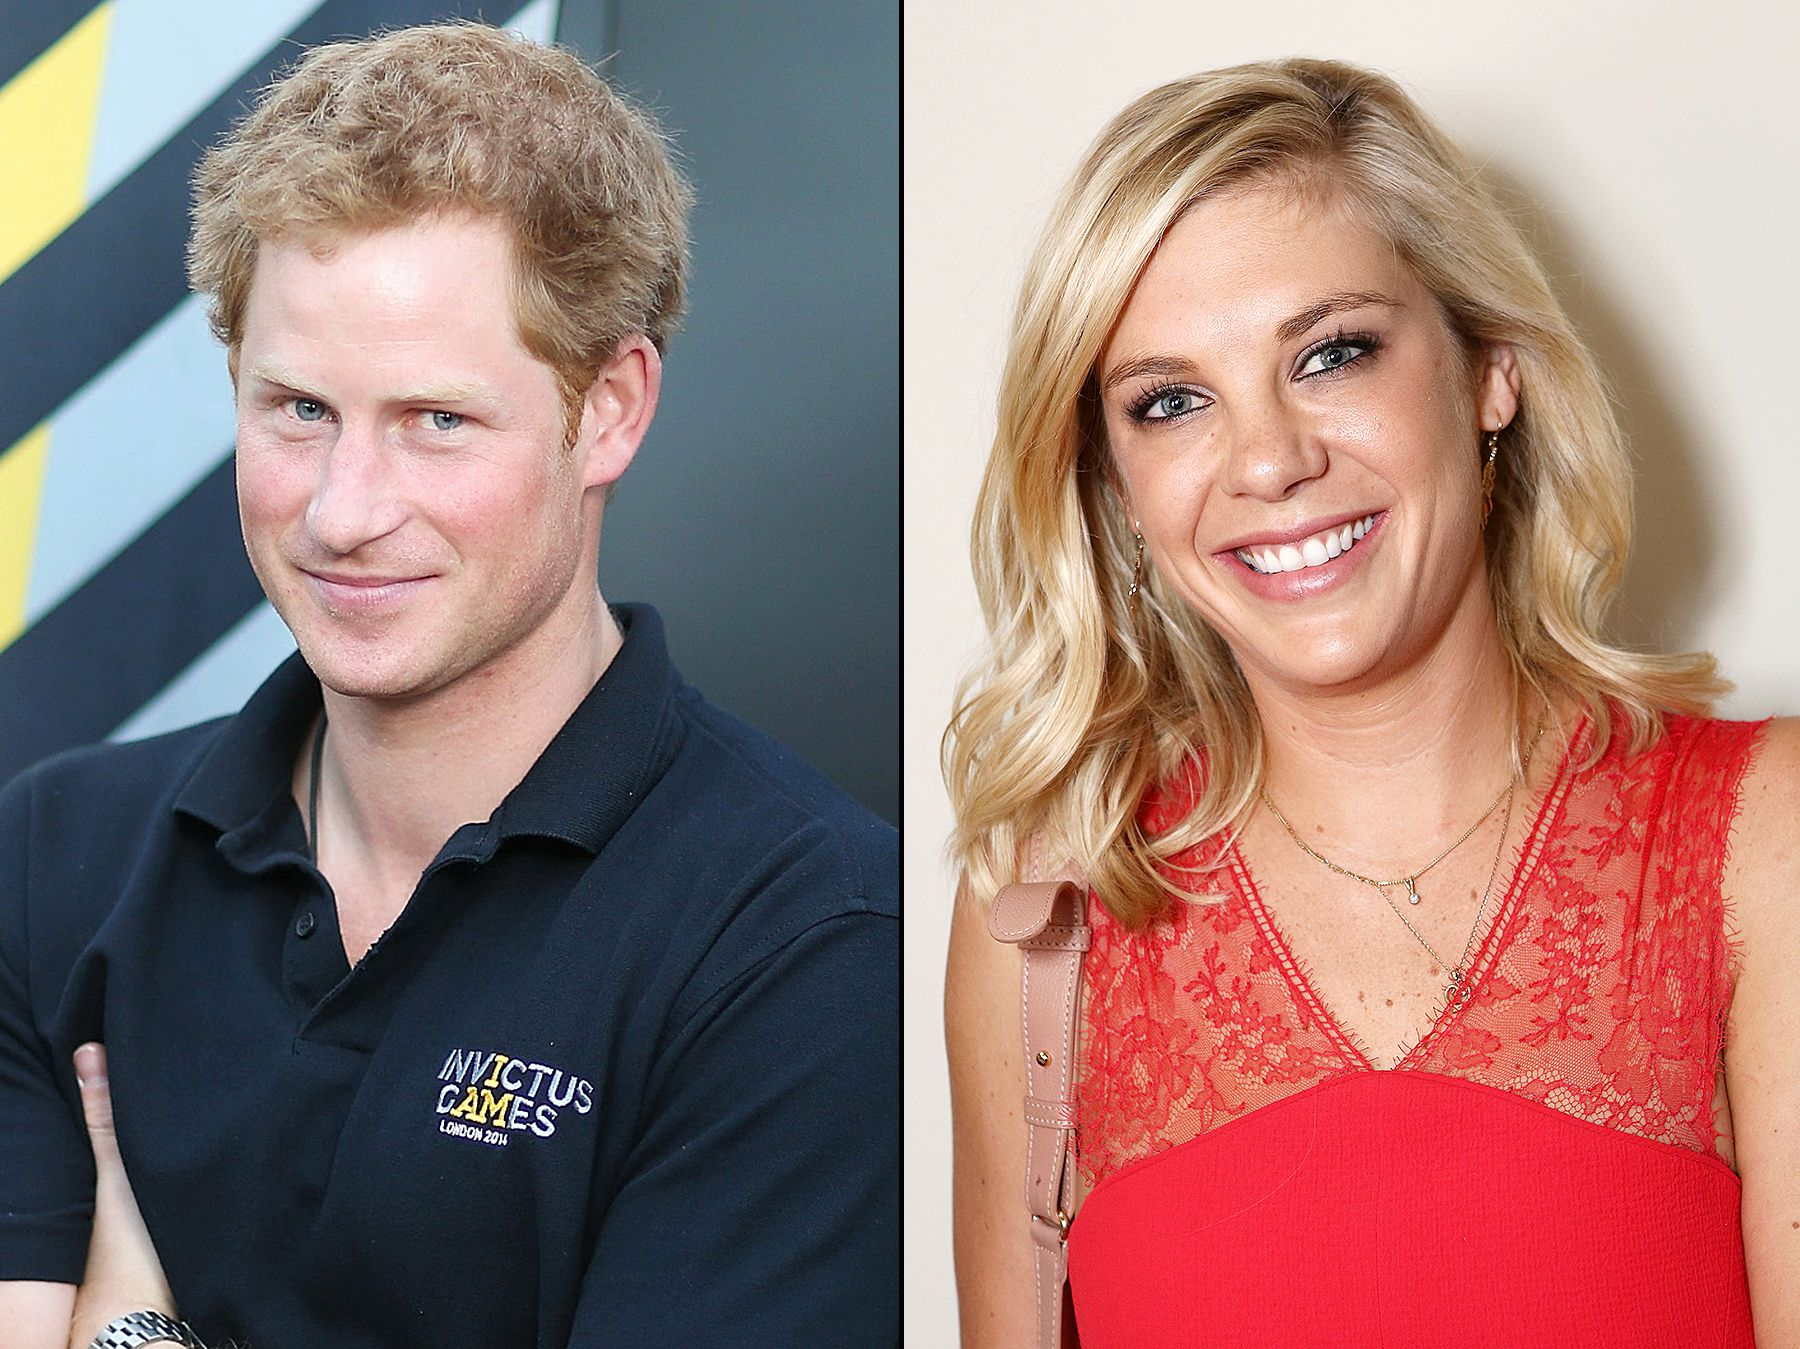 is prince harry dating chelsy Cressida bonas and chelsy davy are the names of the prince's ex-girlfriends prince harry dated cressida for two years and previous.